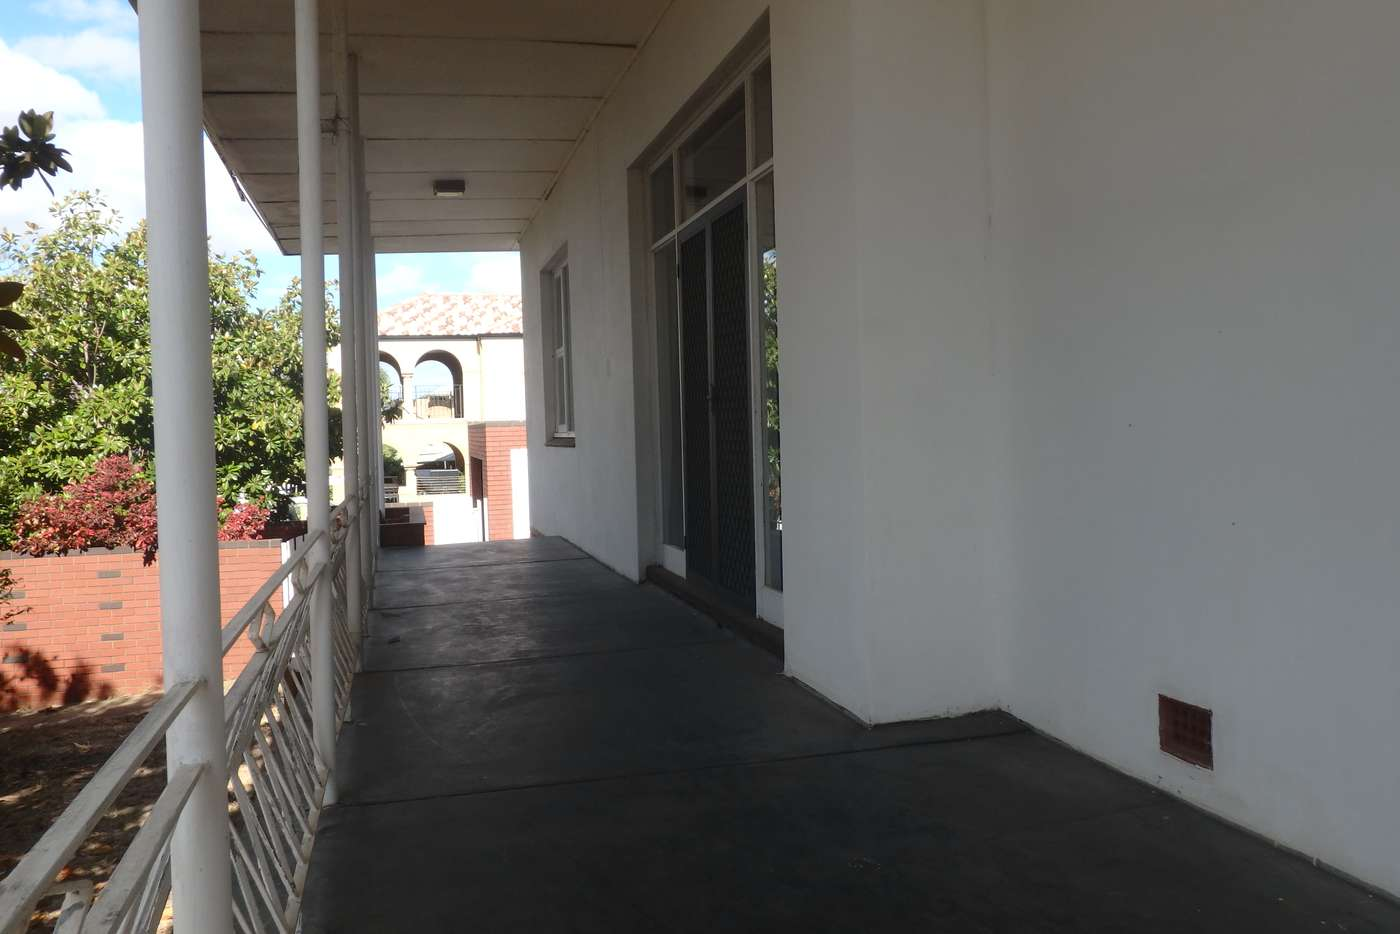 Seventh view of Homely house listing, 98 Northwood Street, West Leederville WA 6007